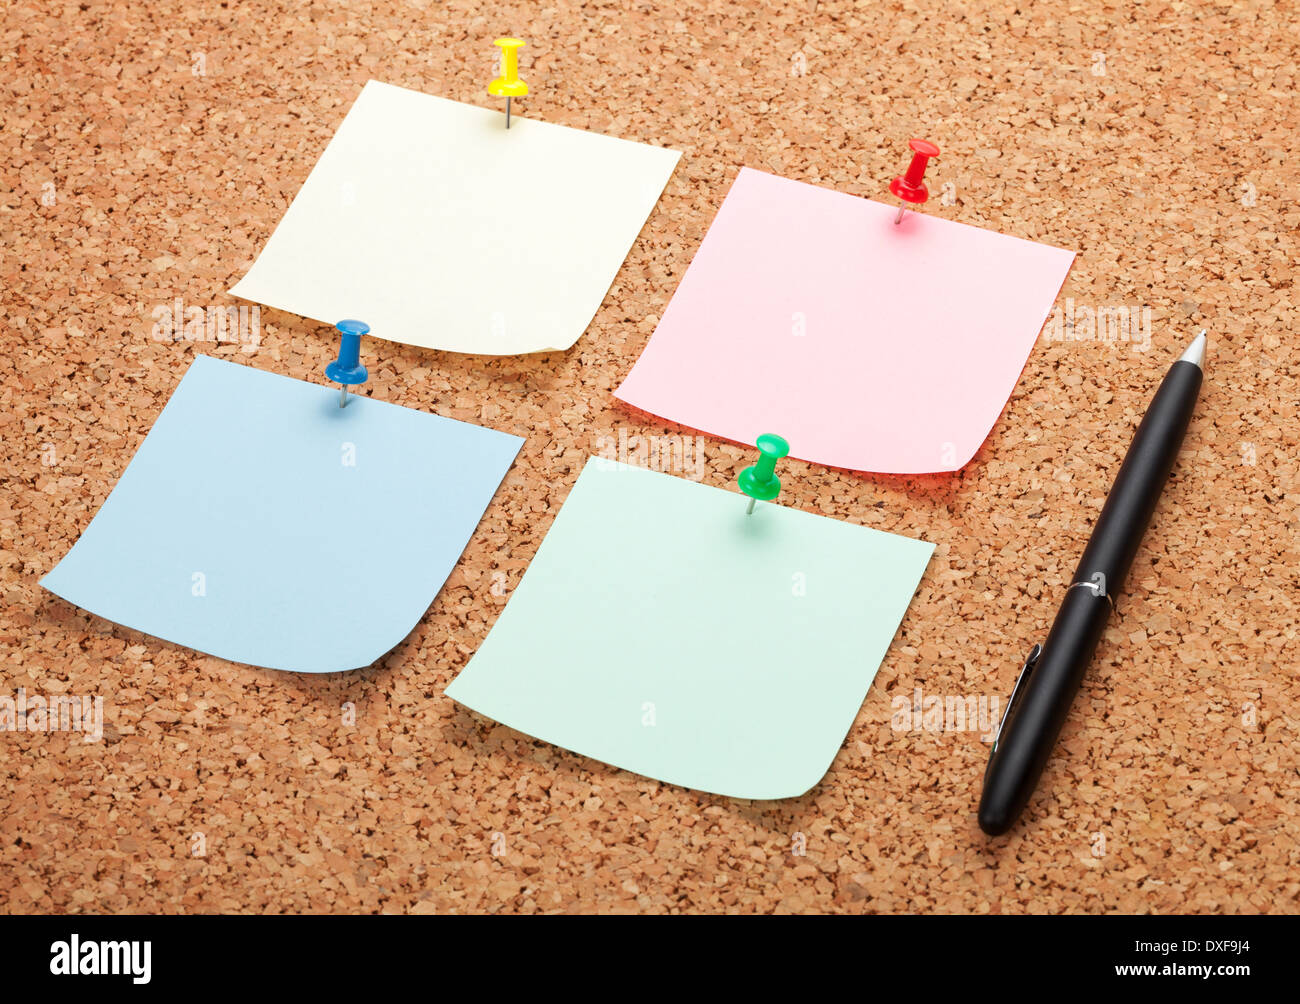 Blank postit notes on cork notice board with pen - Stock Image